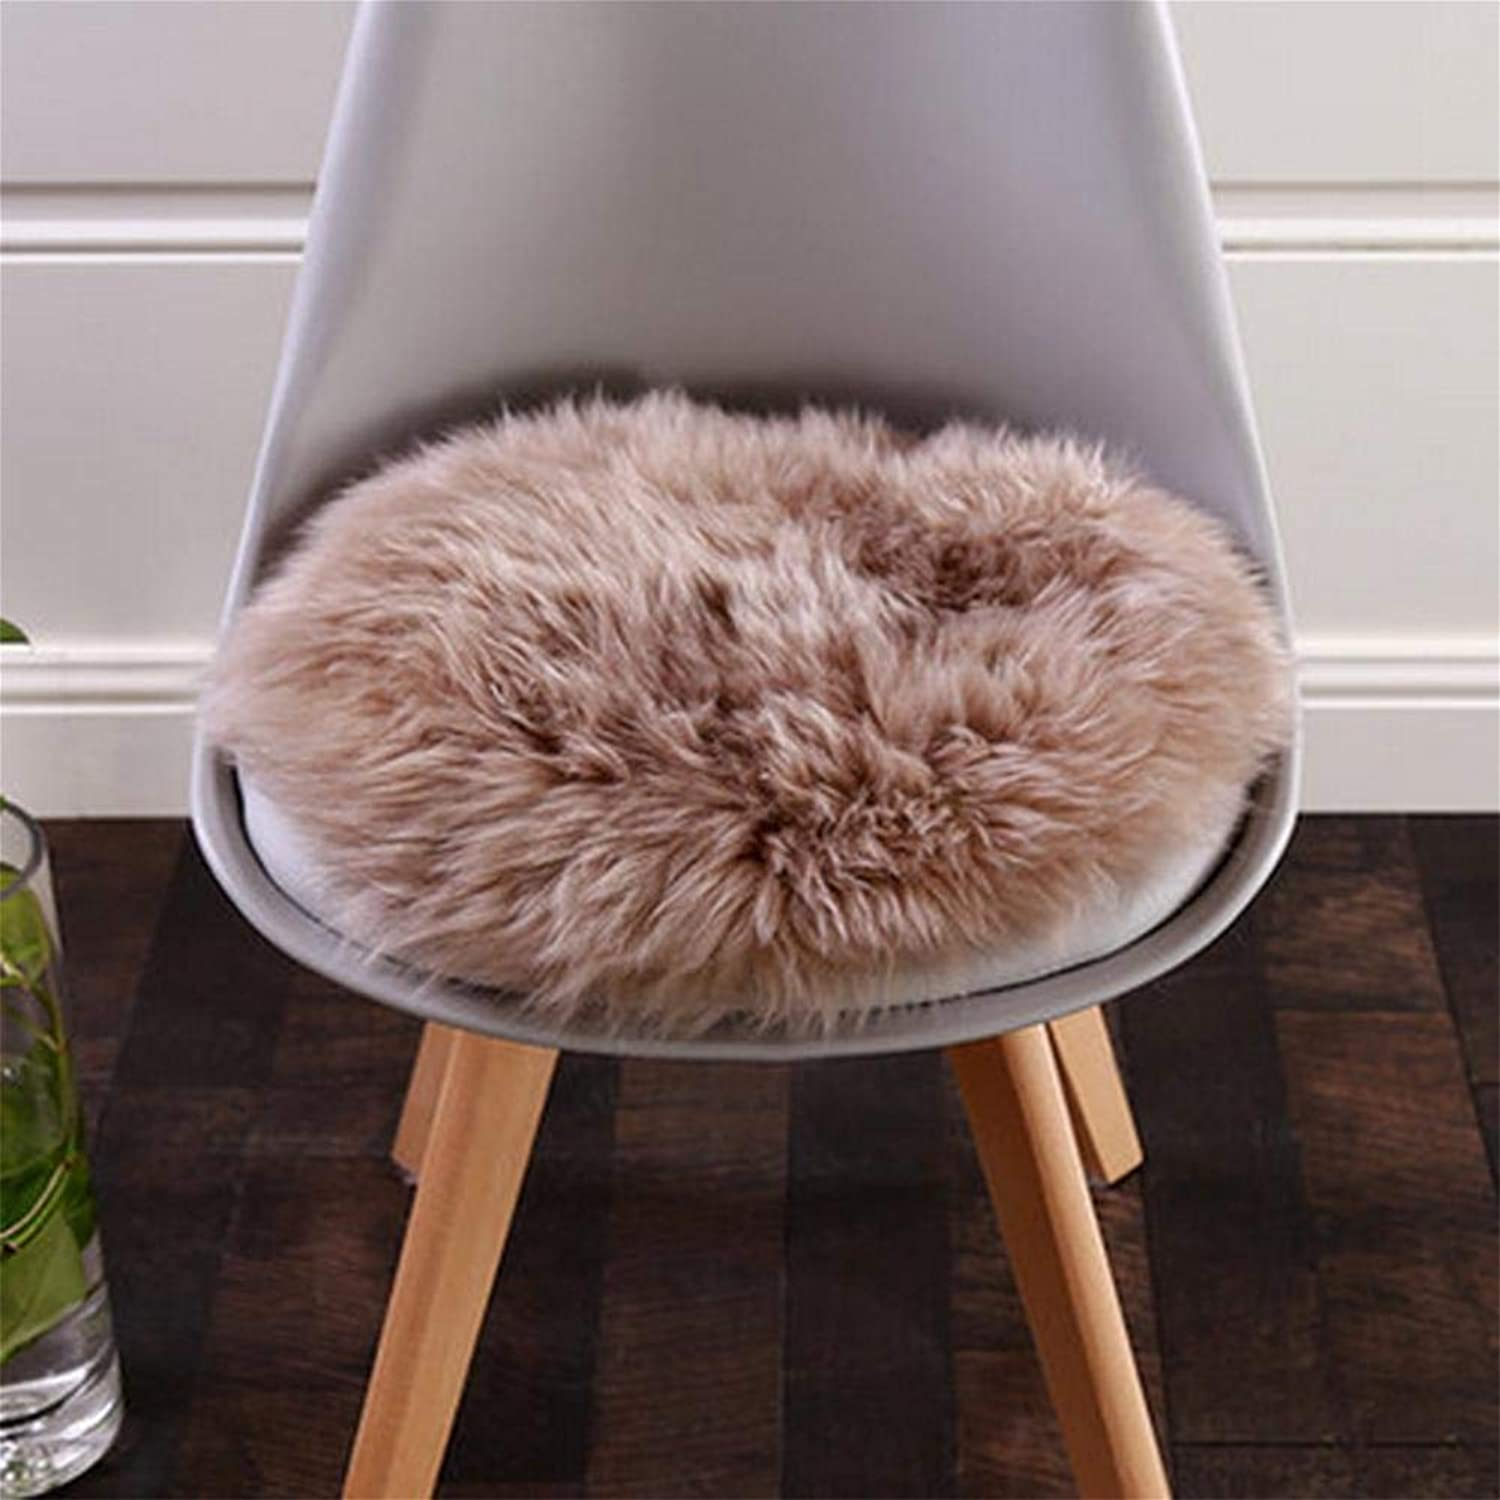 Royare Home Decorations mat Rugs, Soft Fluffy Faux Chair Cover Hairy Washable Carpet Non Slip Mats